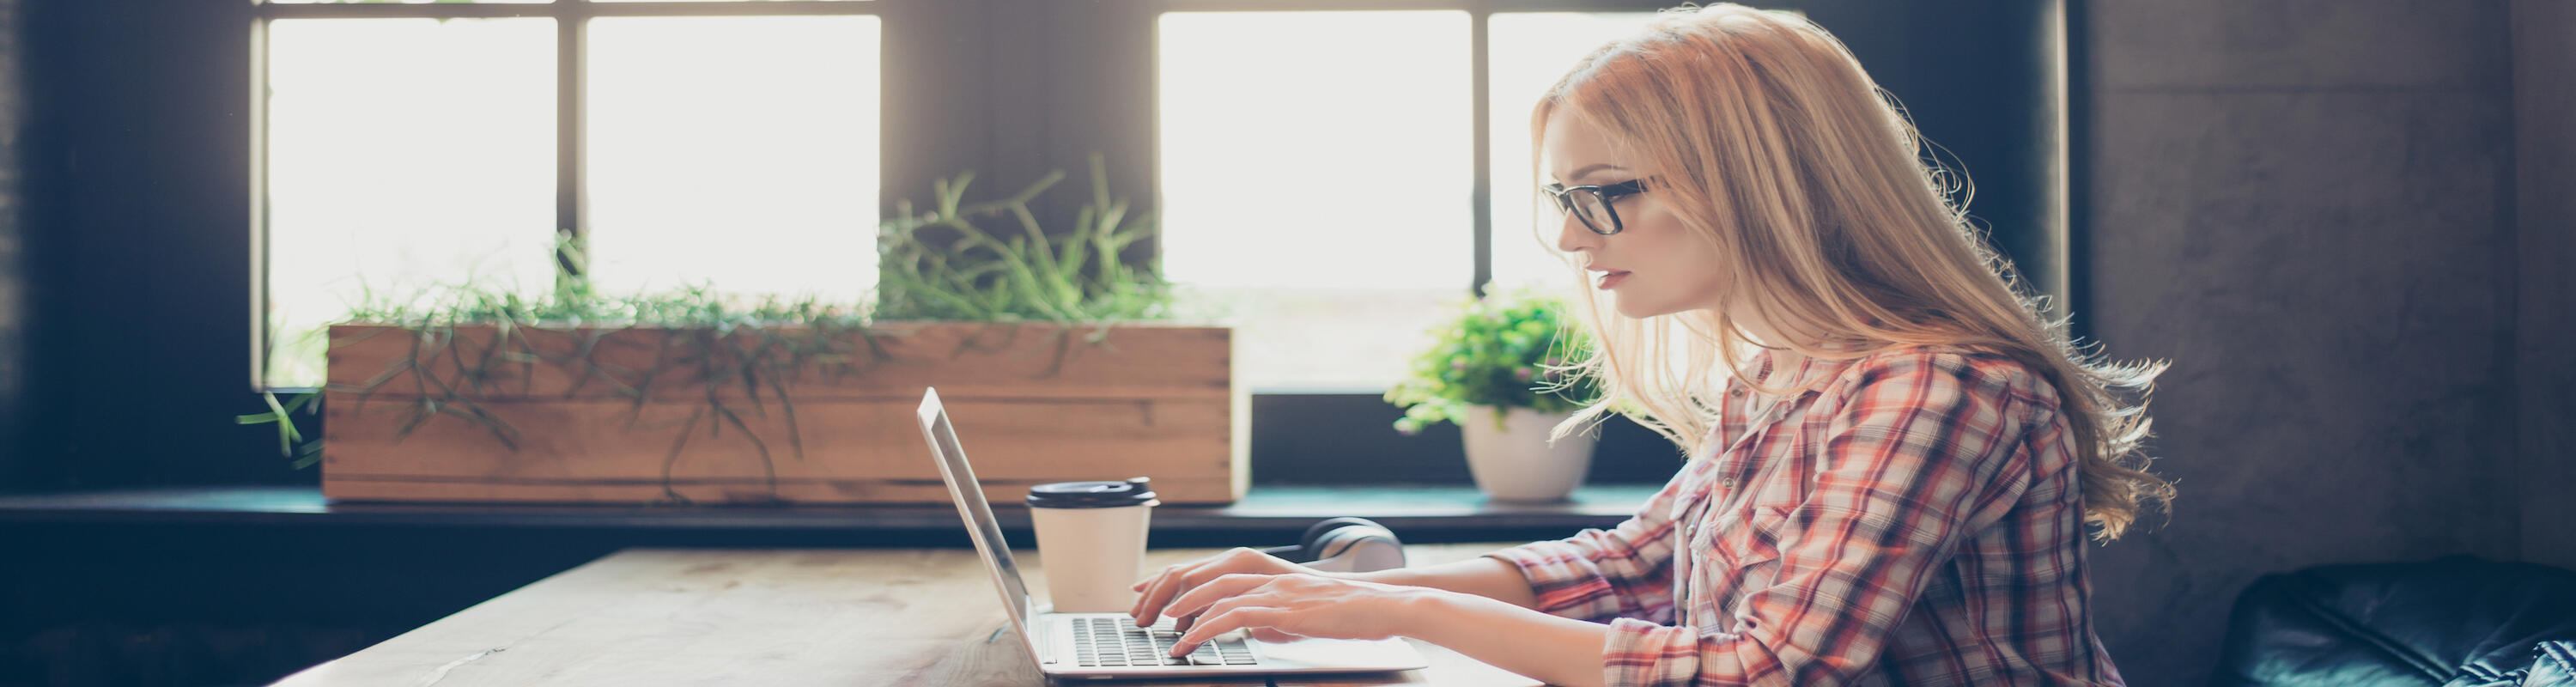 girl wearing glasses sitting at computer